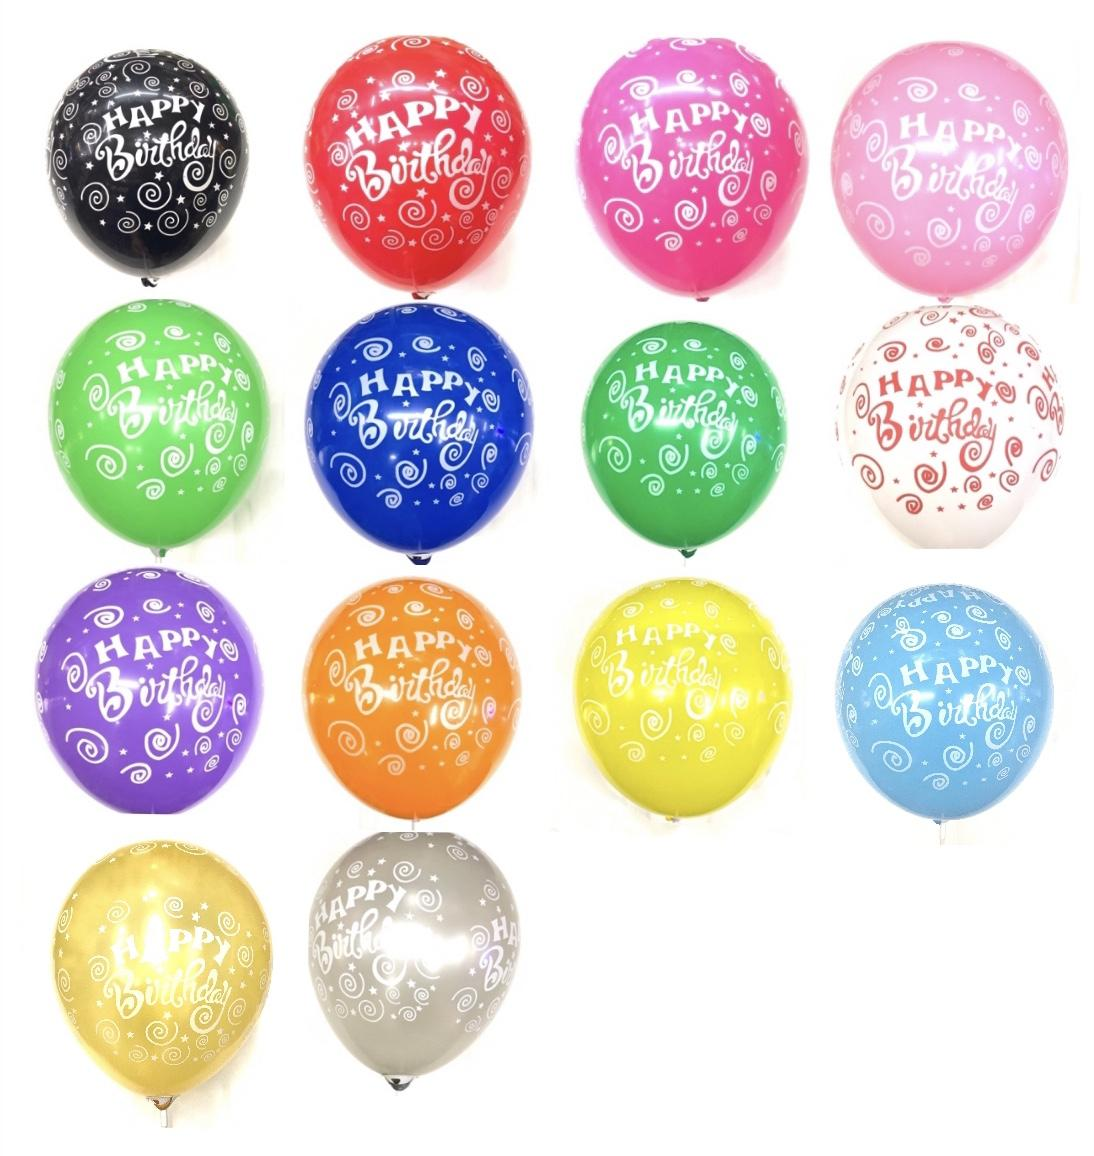 25pcs Happy Birthday Balloon Size 12 Printed Rubber For Decoration